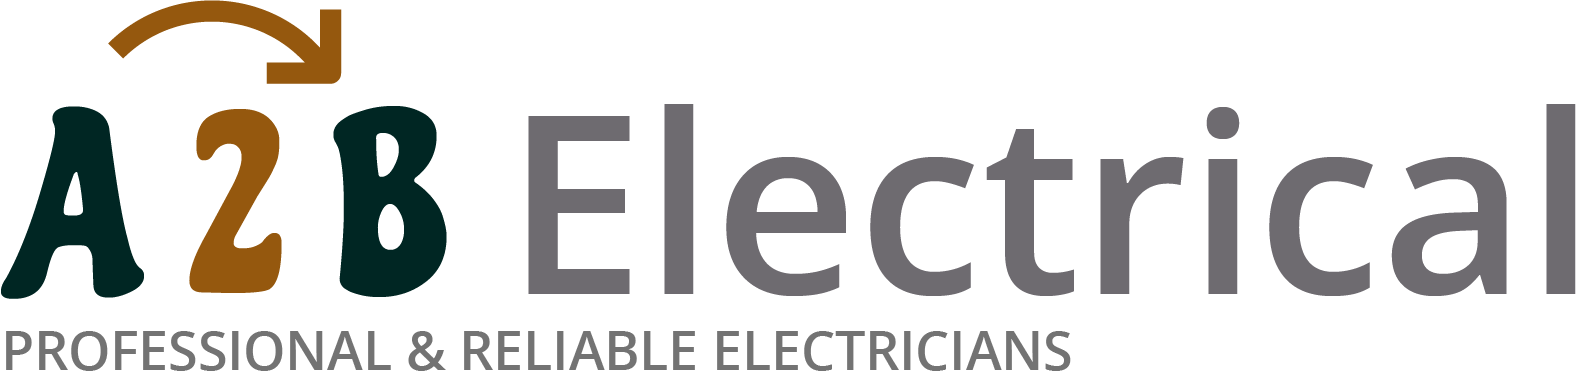 If you have electrical wiring problems in Marylebone, we can provide an electrician to have a look for you.